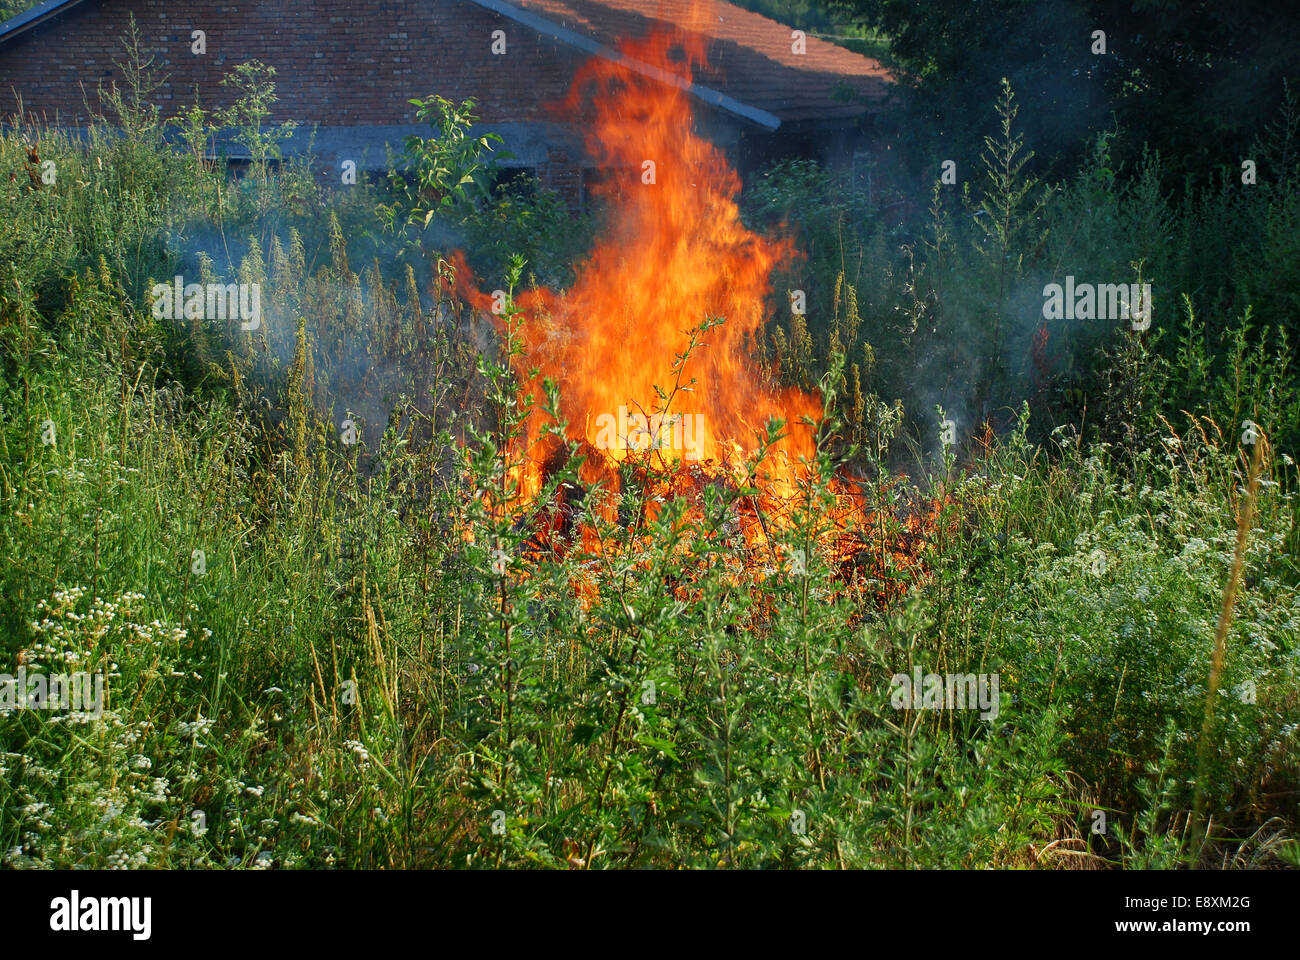 Fire in green grass - Stock Image